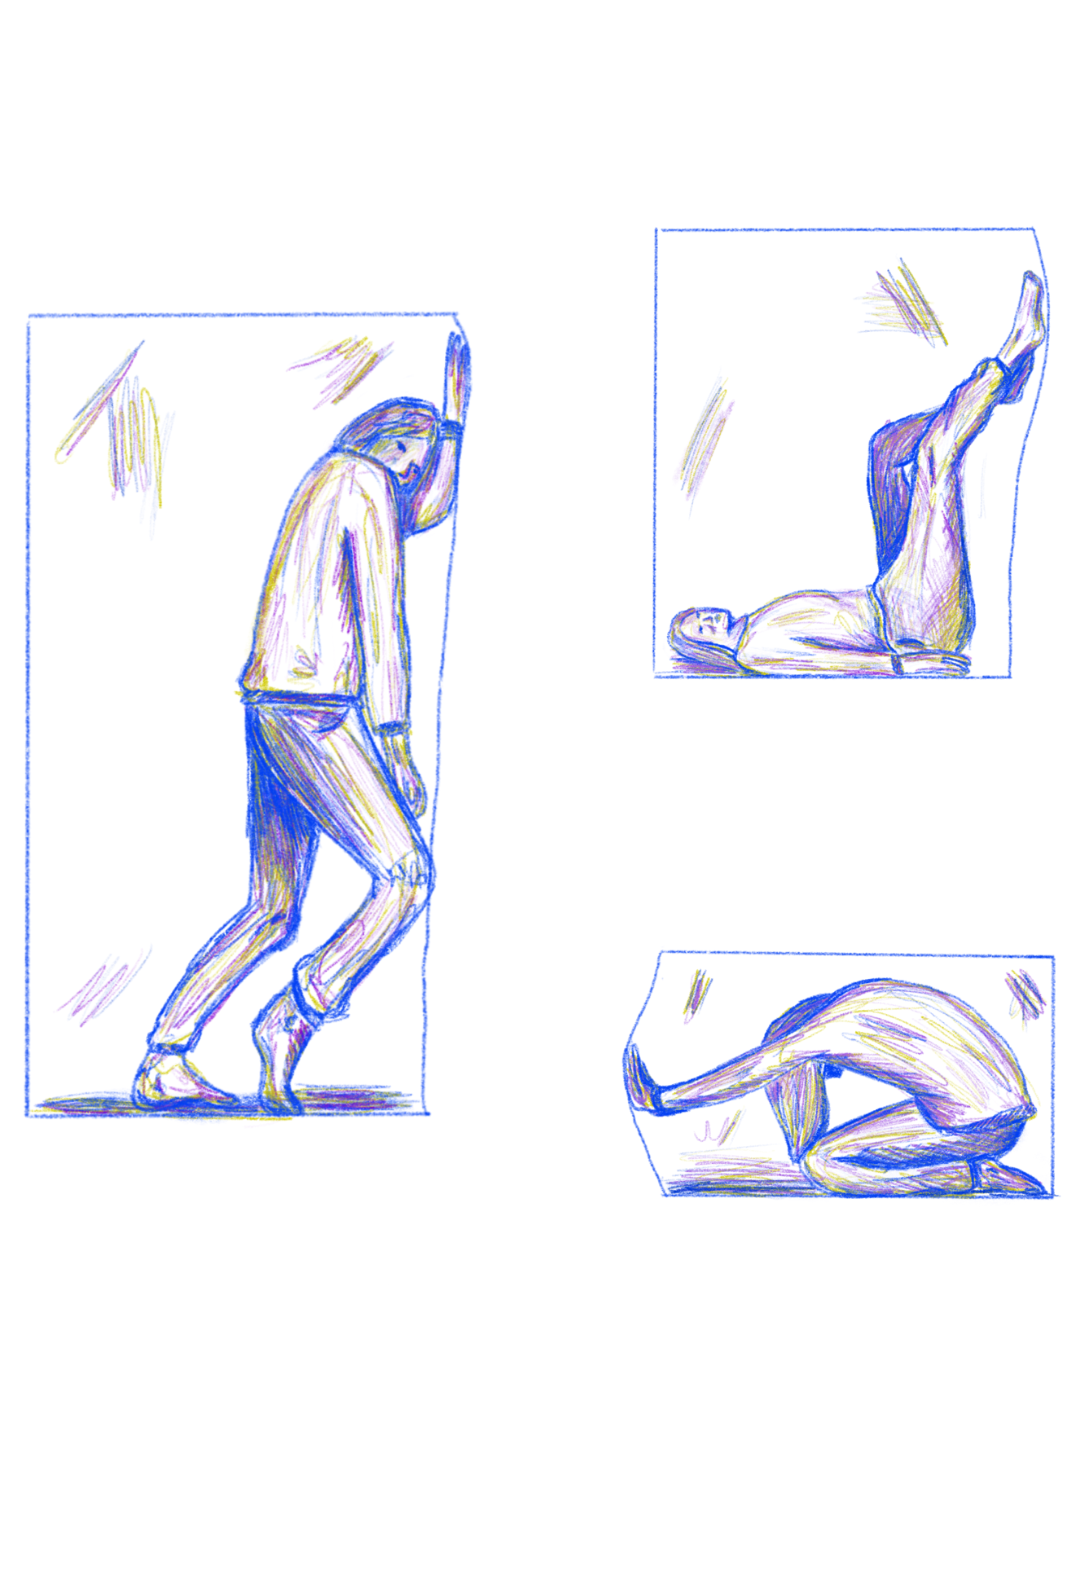 Three images showing a person trapped inside a rectangular box. In the first they area leaning against the side, in the second they are lying on their back and pushing against the box with their feet, and in the third they are crouched over on the floor, pushing at the box with their hand